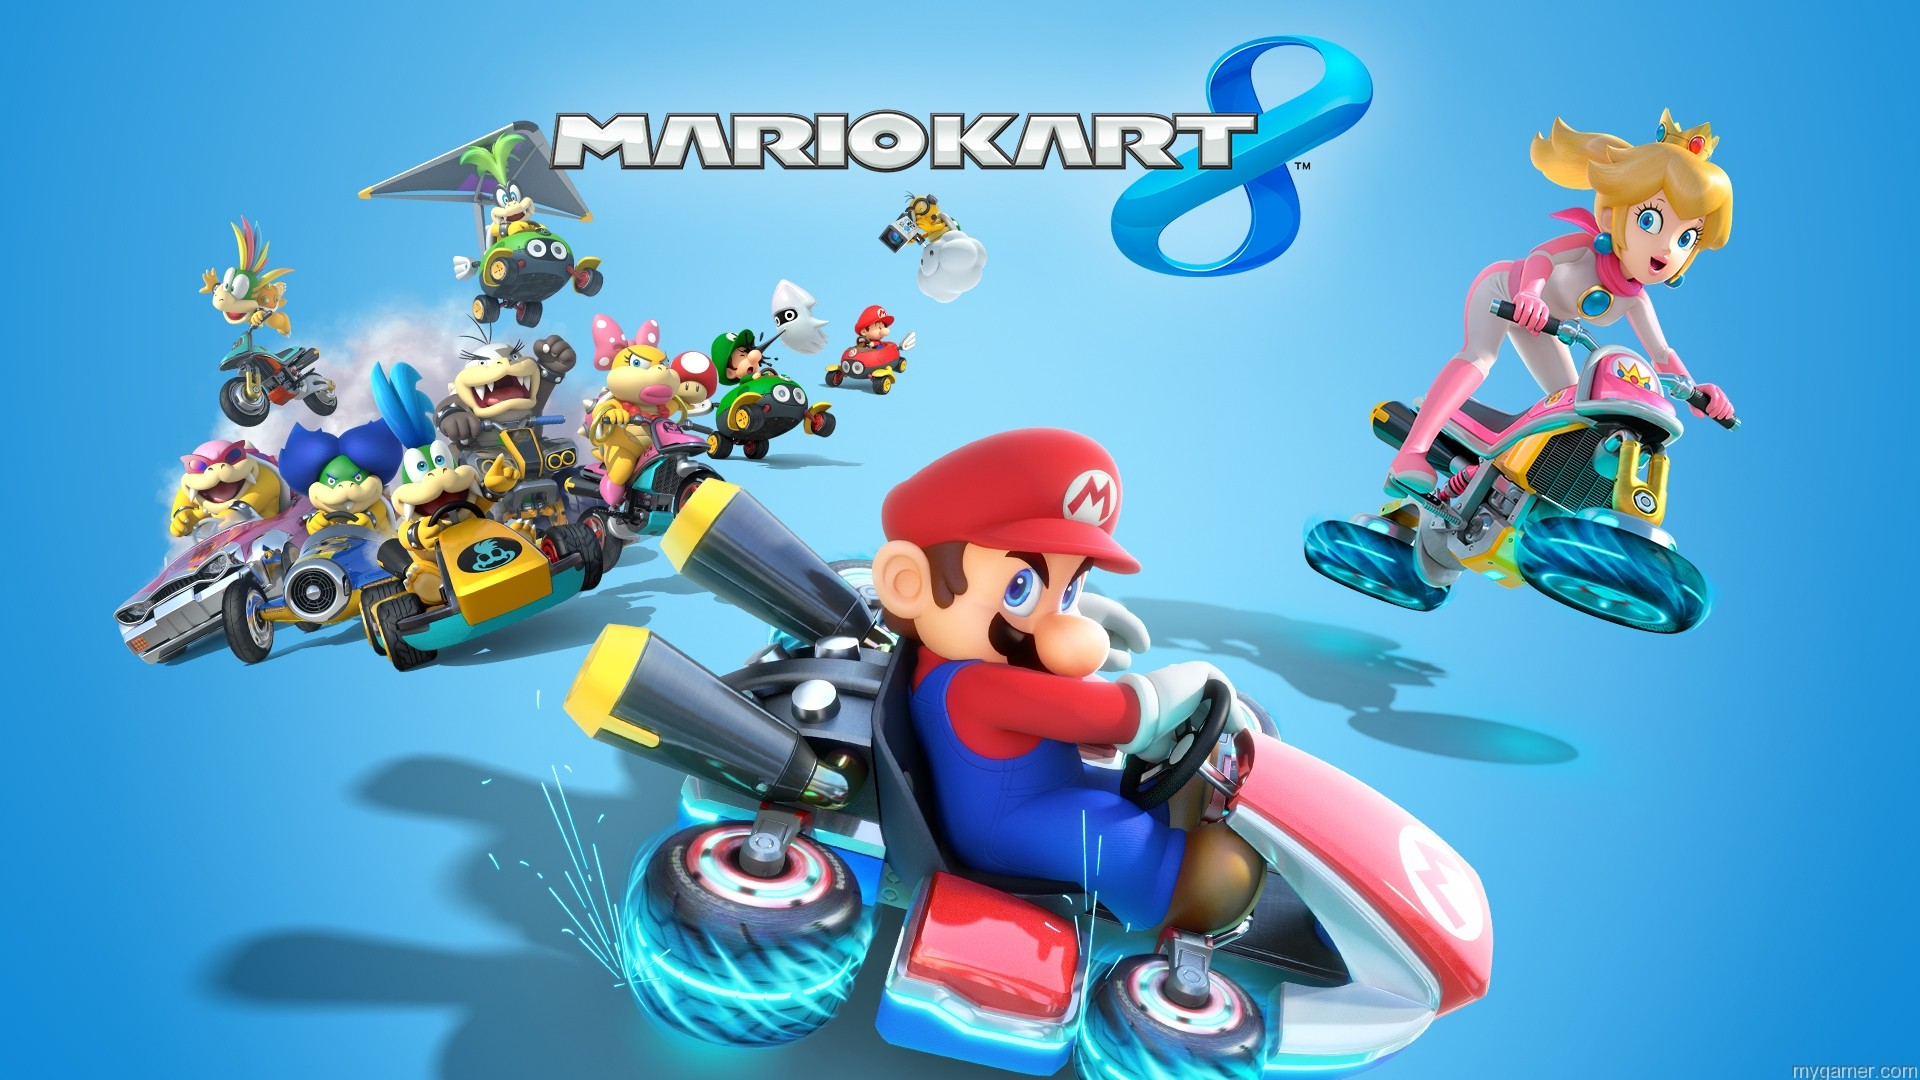 Mario Kart 8 Tips, Tricks, Hints and Secrets Mario Kart 8 Tips, Tricks, Hints and Secrets Mairo Kart 8